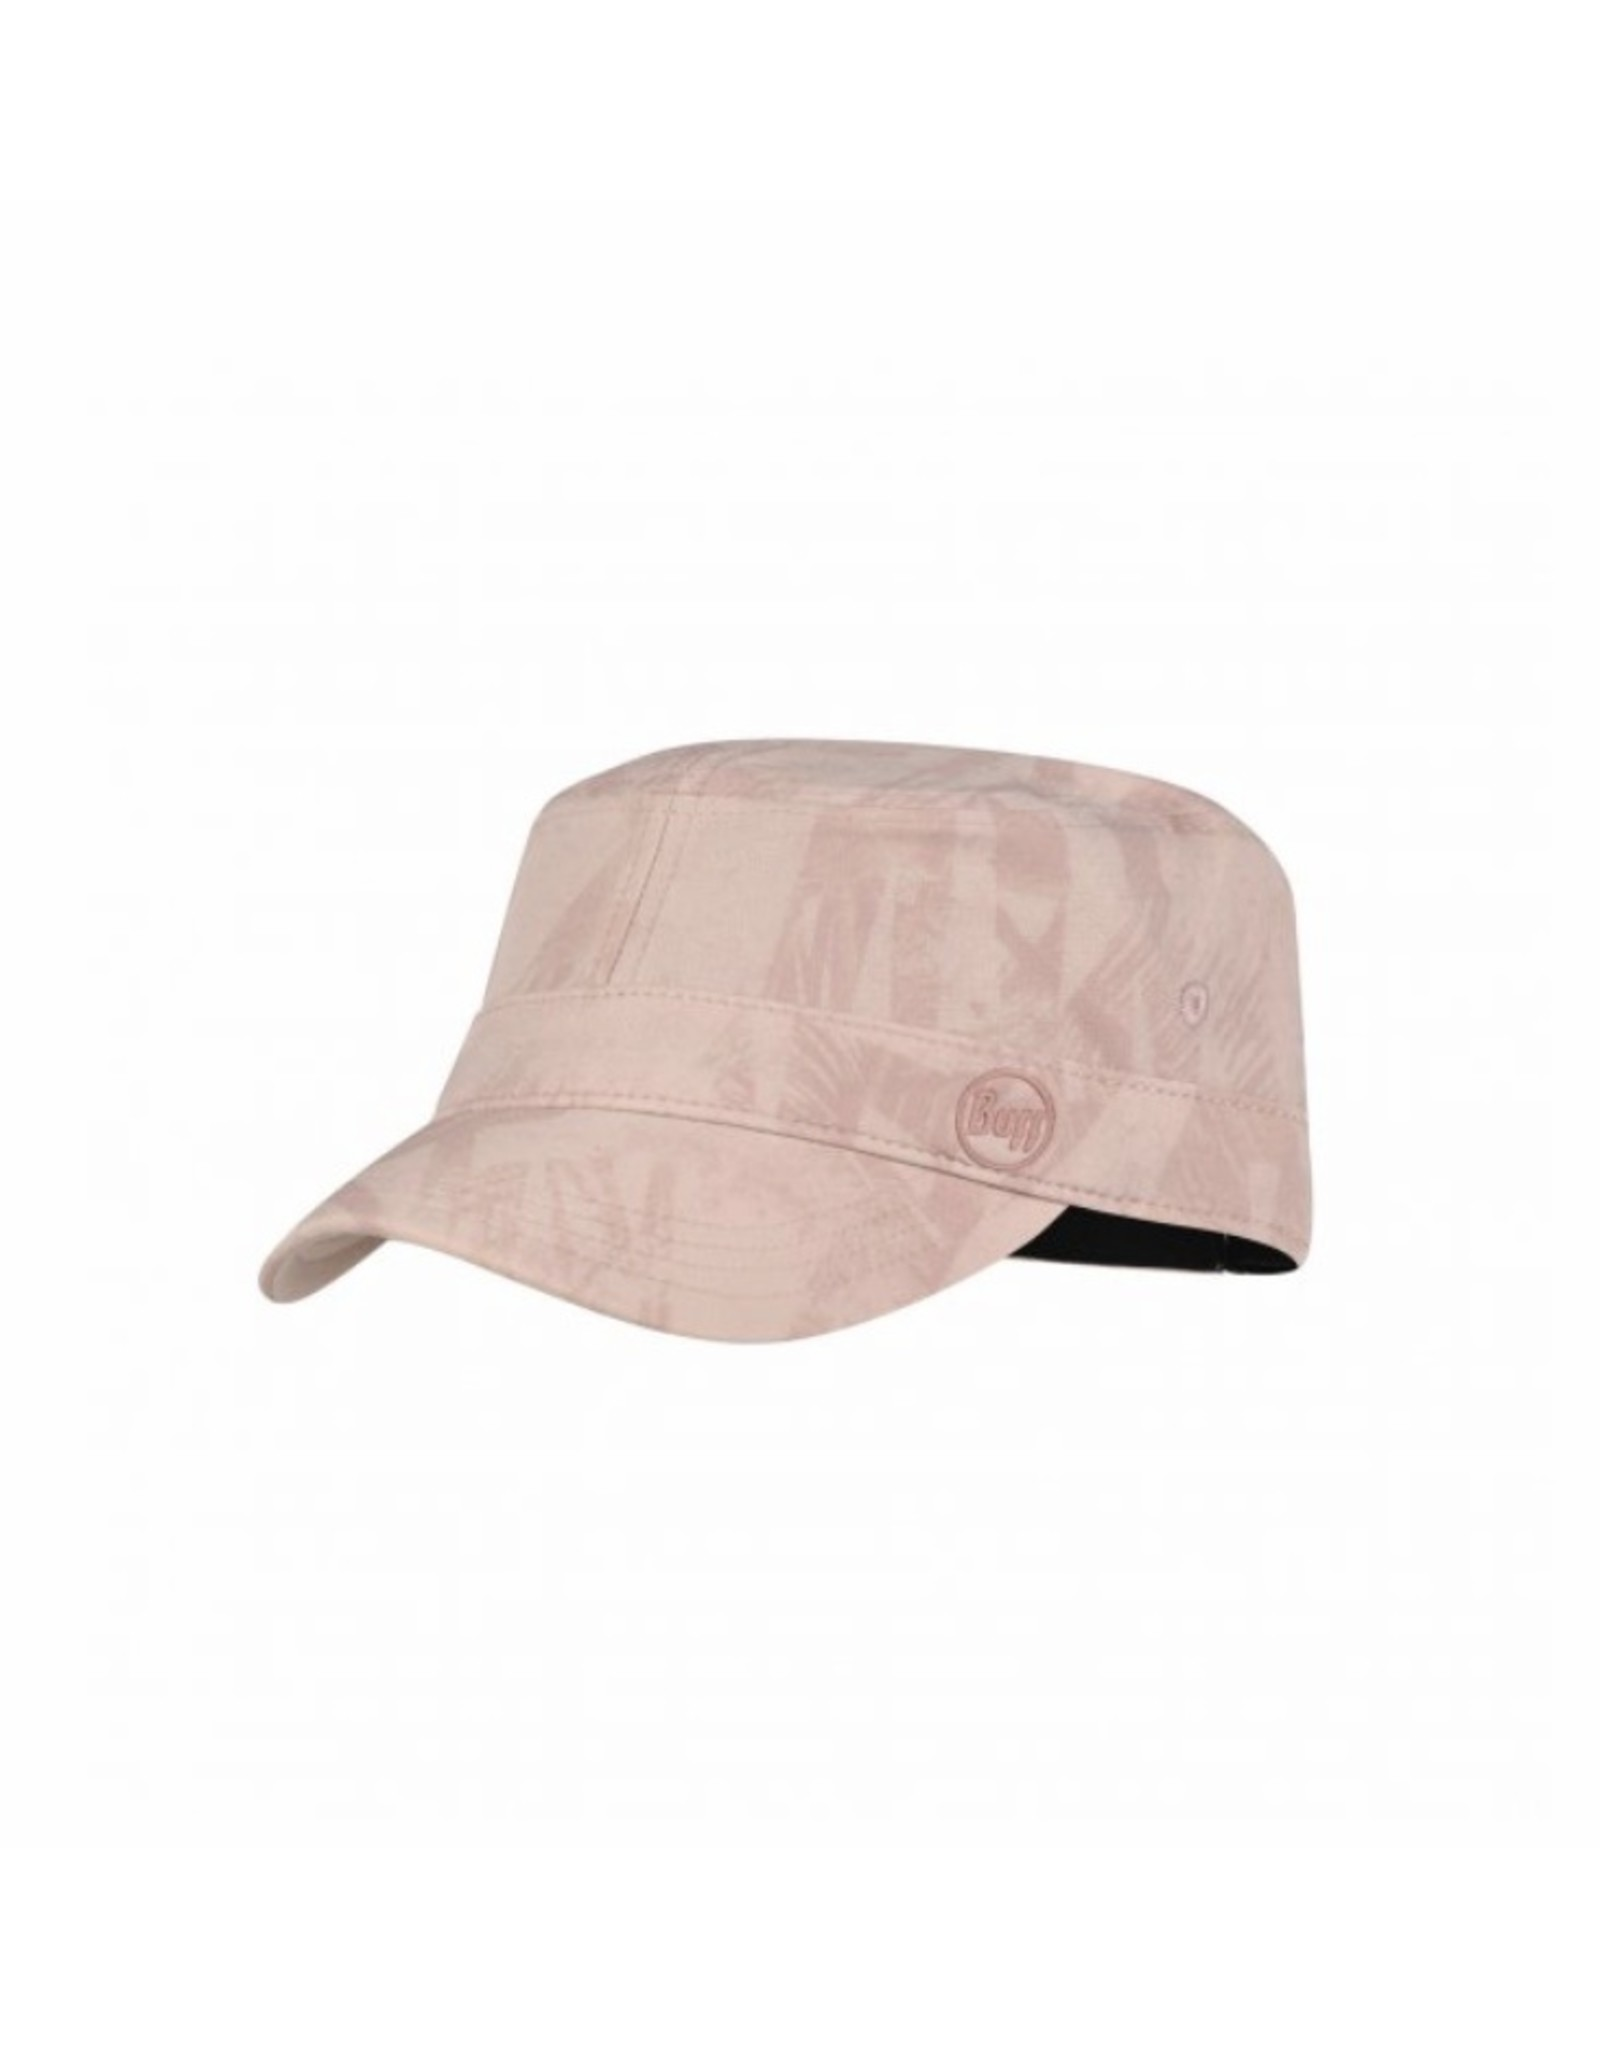 Buff Buff Military Cap Açai Rose Pink S/M